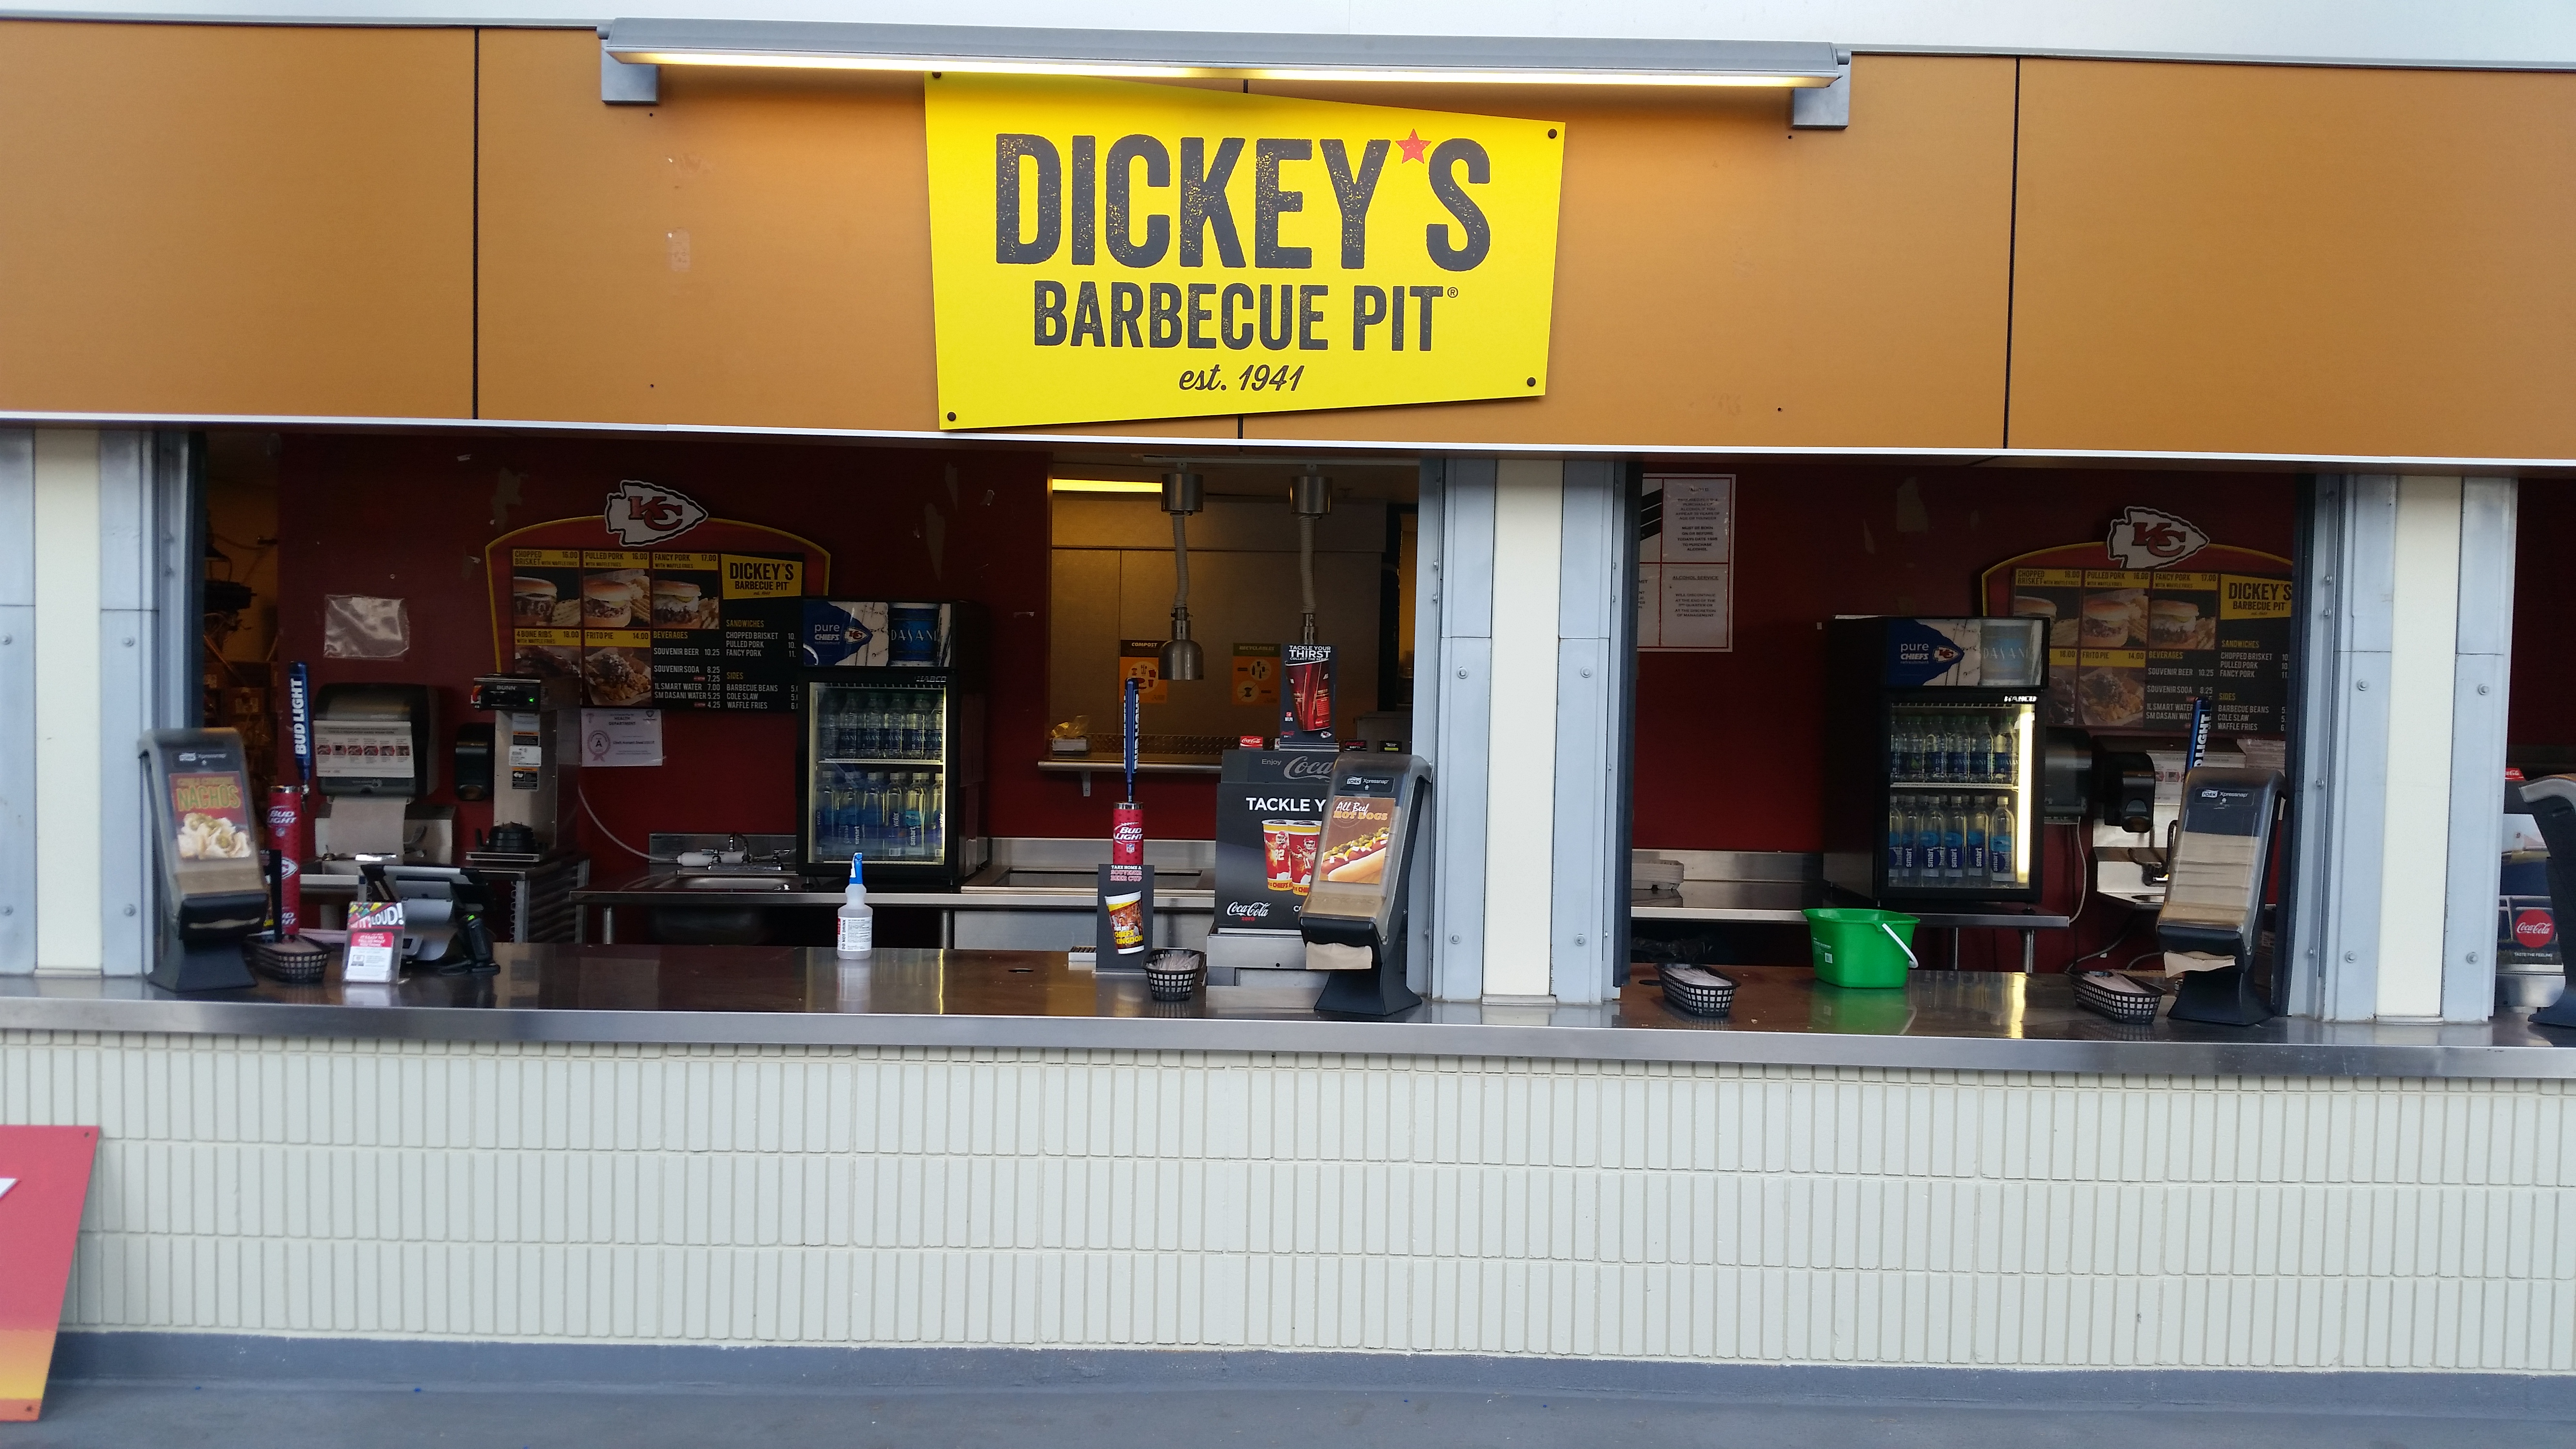 The Daily Meal: Dickey's Barbecue Pit Scores at Arrowhead Stadium in Kansas City, MO